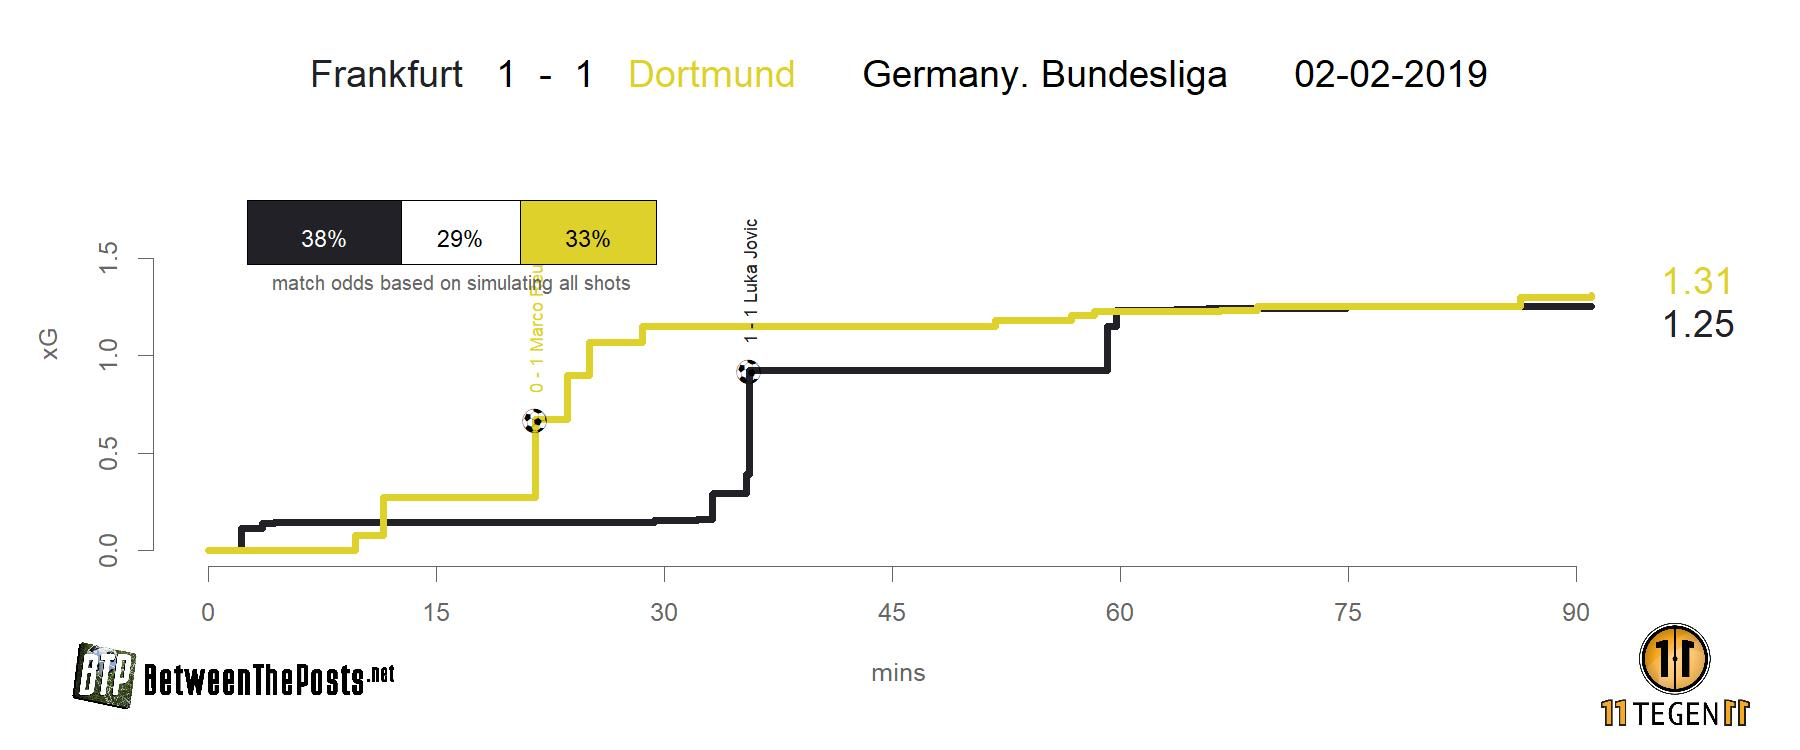 Expected goals plot Eintracht Frankfurt - Borussia Dortmund 1-1 Bundesliga